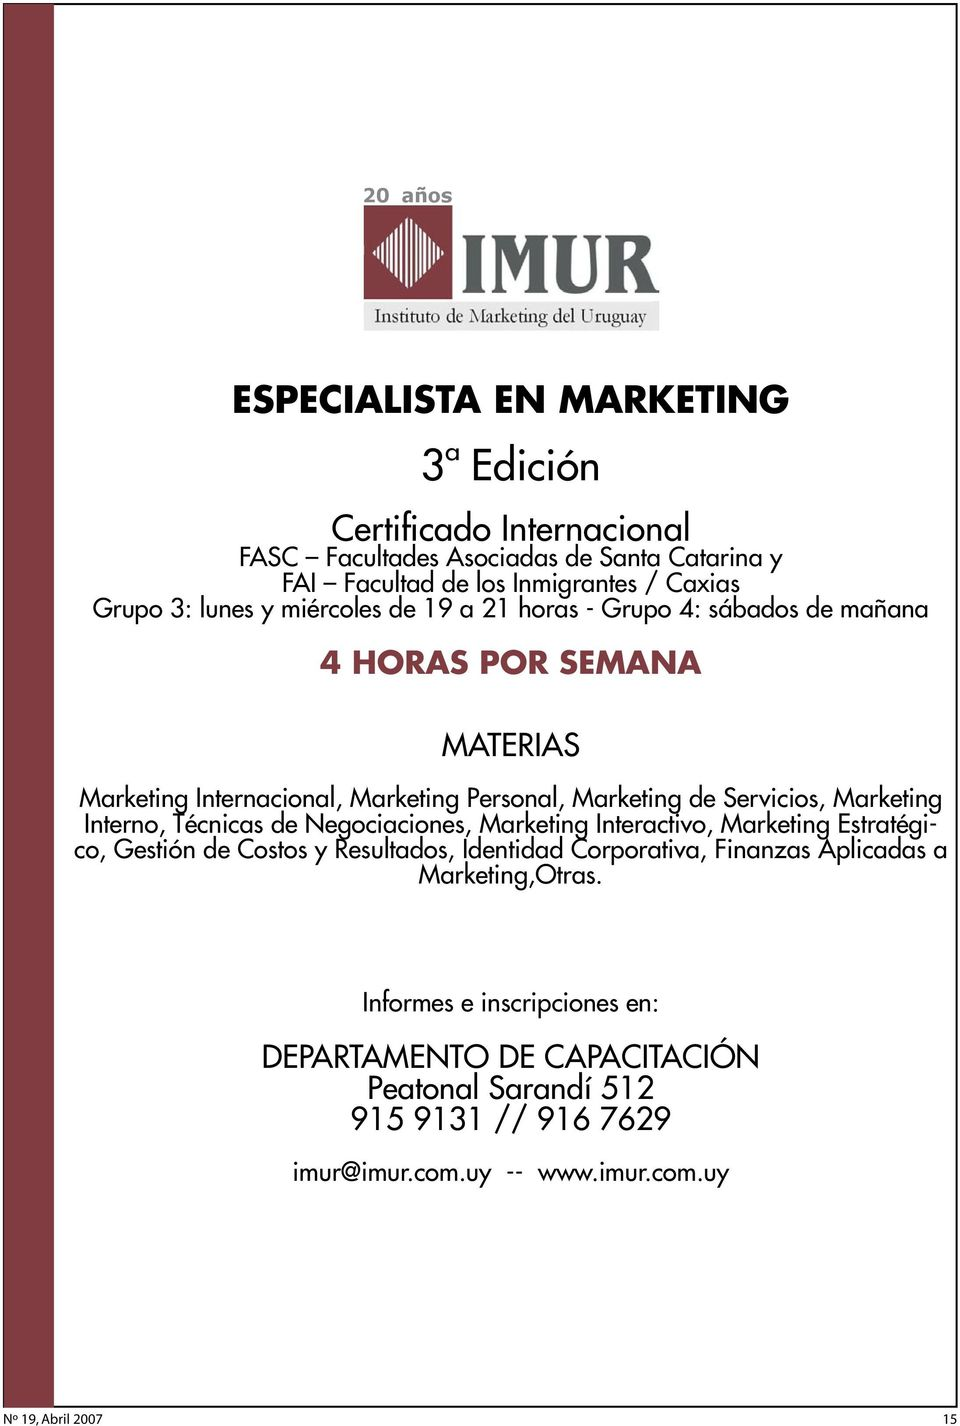 Marketing Interno, Técnicas de Negociaciones, Marketing Interactivo, Marketing Estratégico, Gestión de Costos y Resultados, Identidad Corporativa, Finanzas Aplicadas a